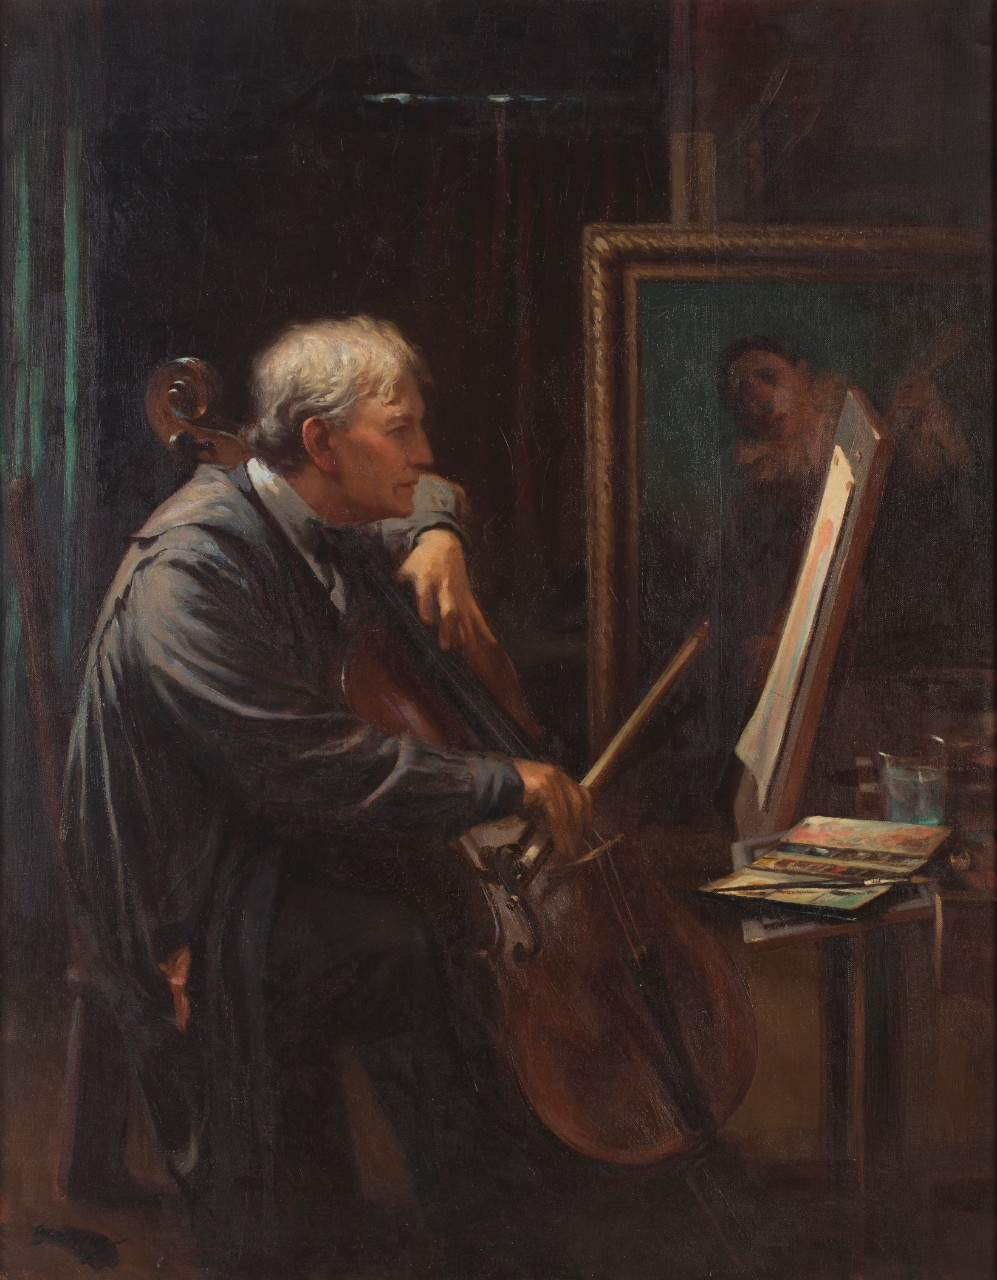 Cellist by Walter Bowring